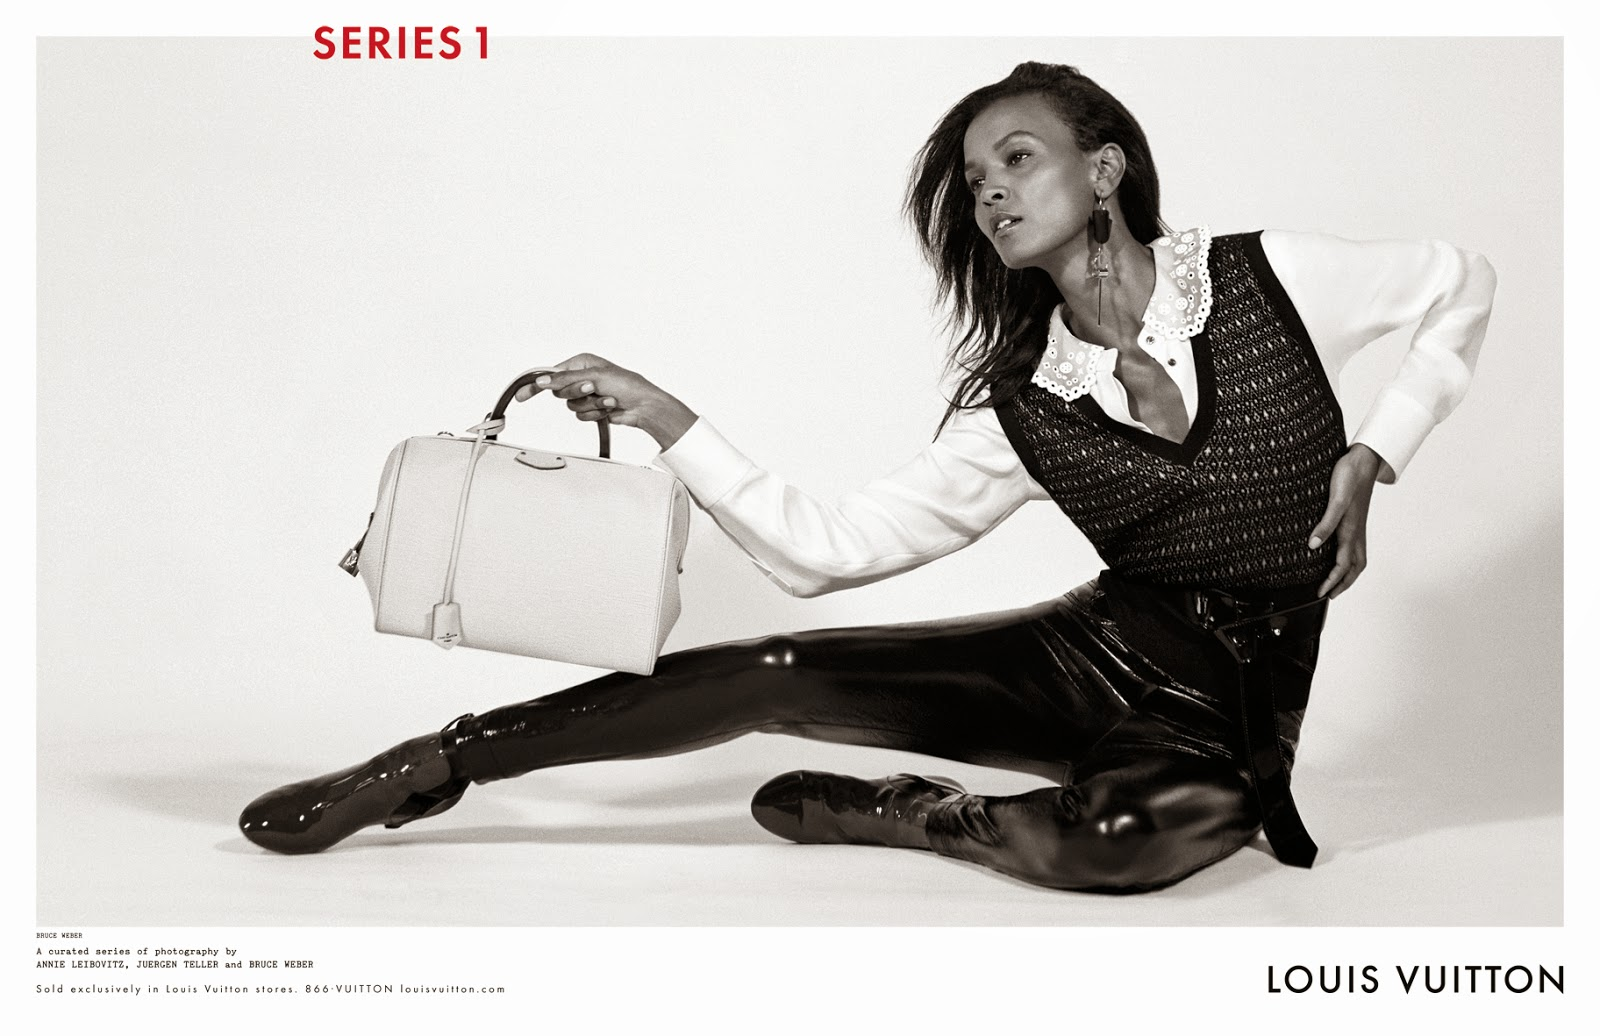 Nicolas Ghesquière's Debut Louis Vuitton Ad Campaign For FW14